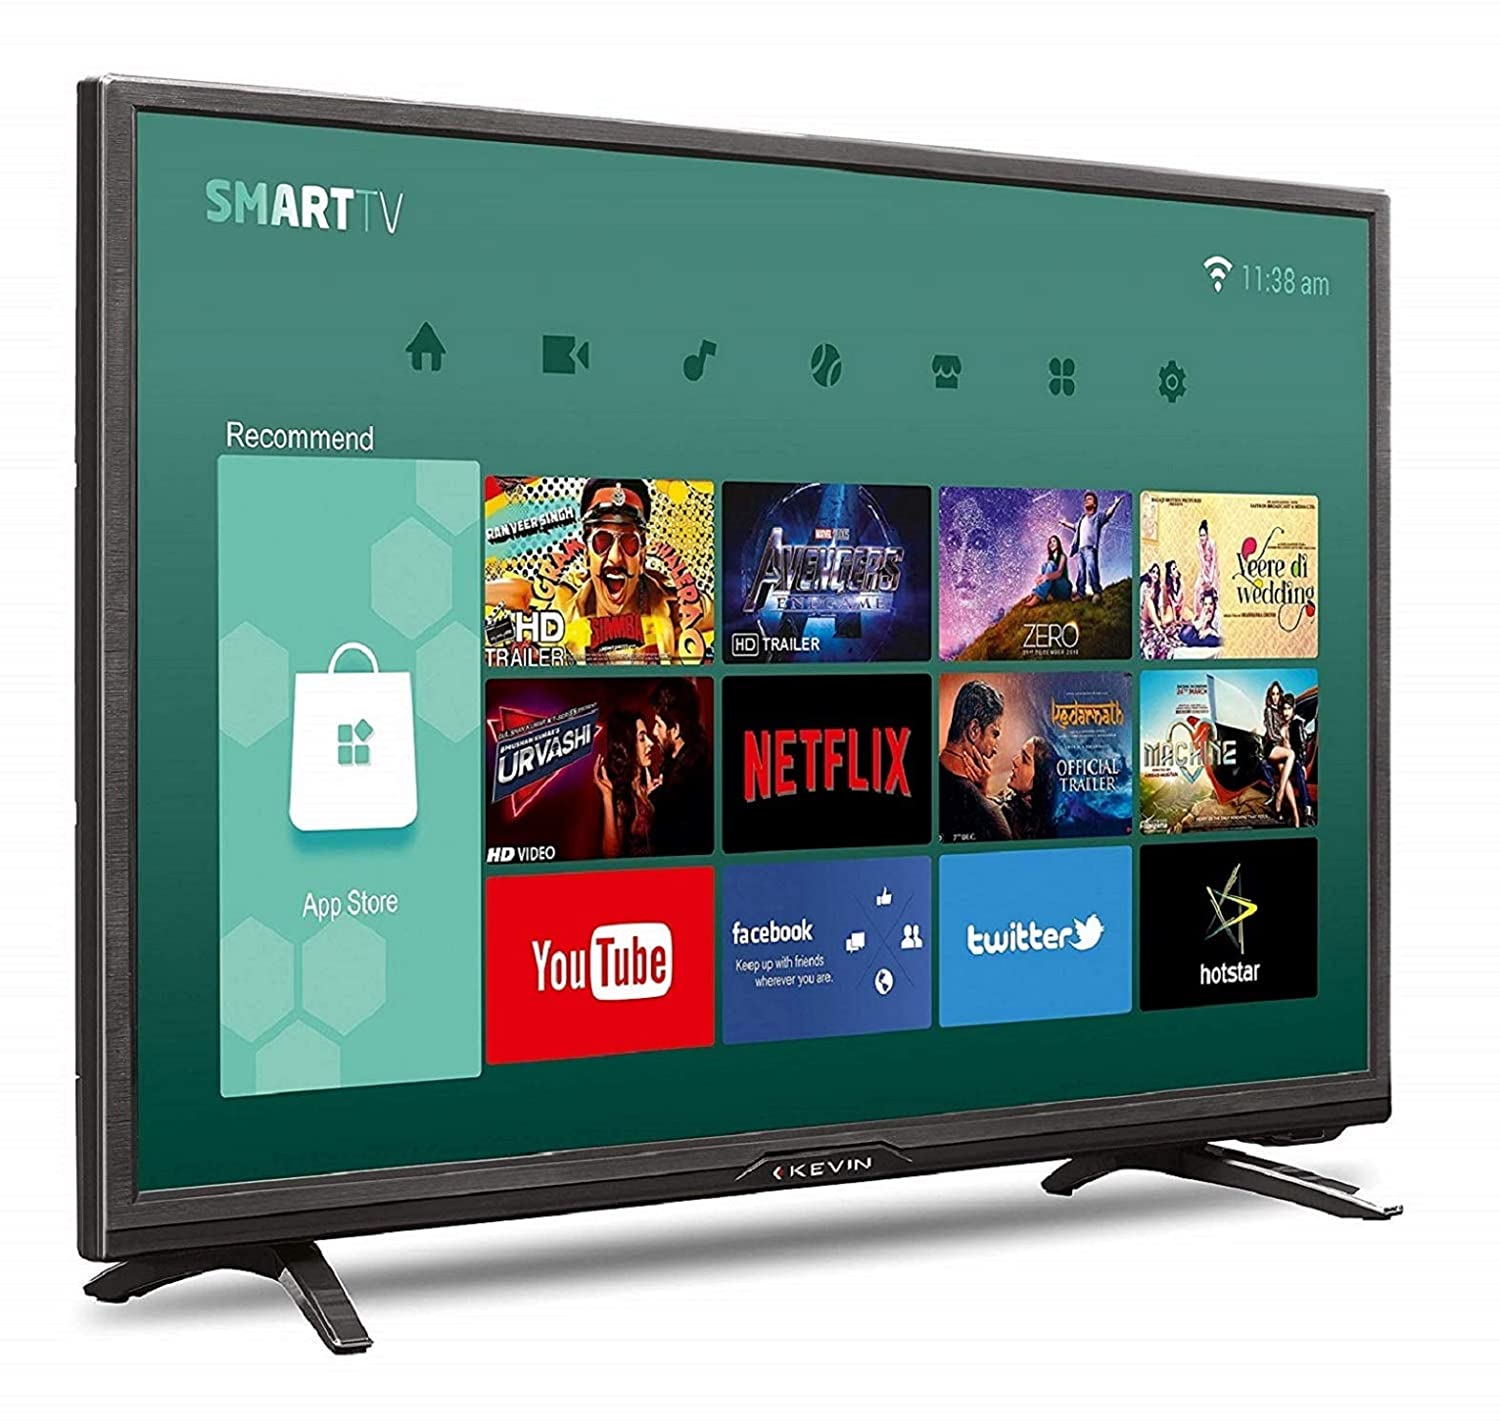 007ddb6d8cf Kevin 80 cm HD Ready LED Smart TV K32CV338H  Amazon.in  Electronics